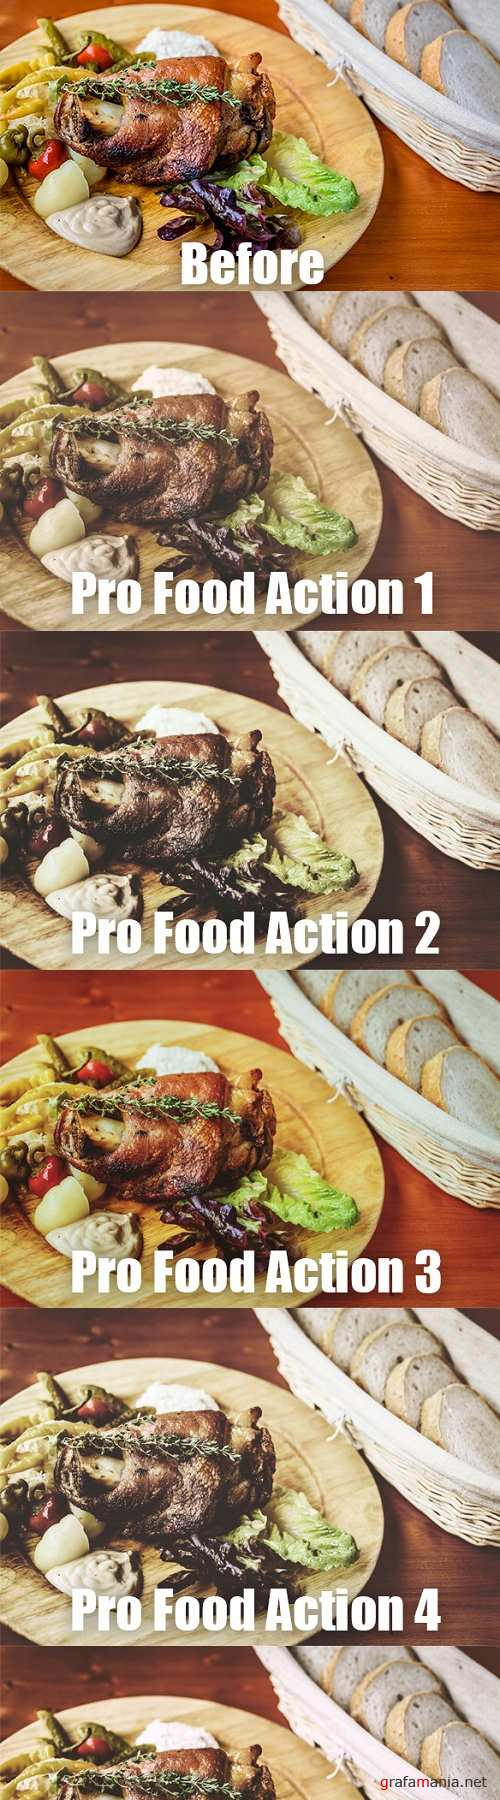 10 Pro Food Action 20333899